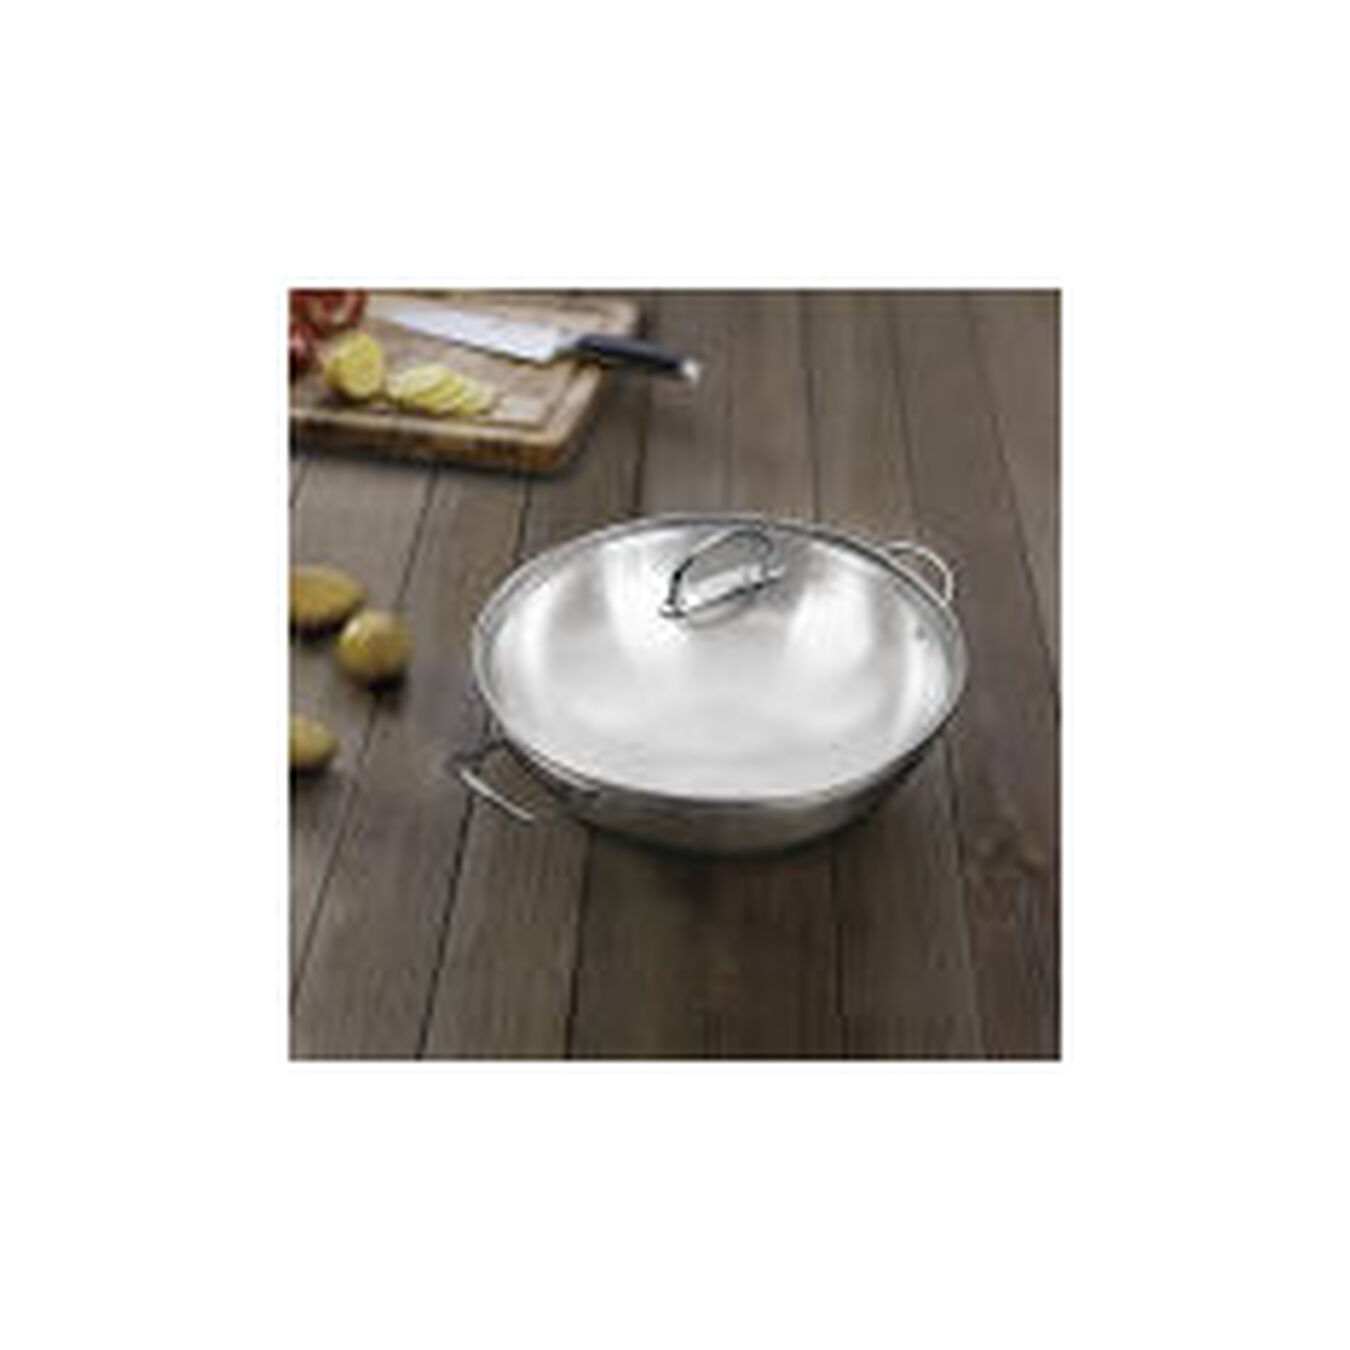 36 cm / 14 inch 18/10 Stainless Steel Wok,,large 4